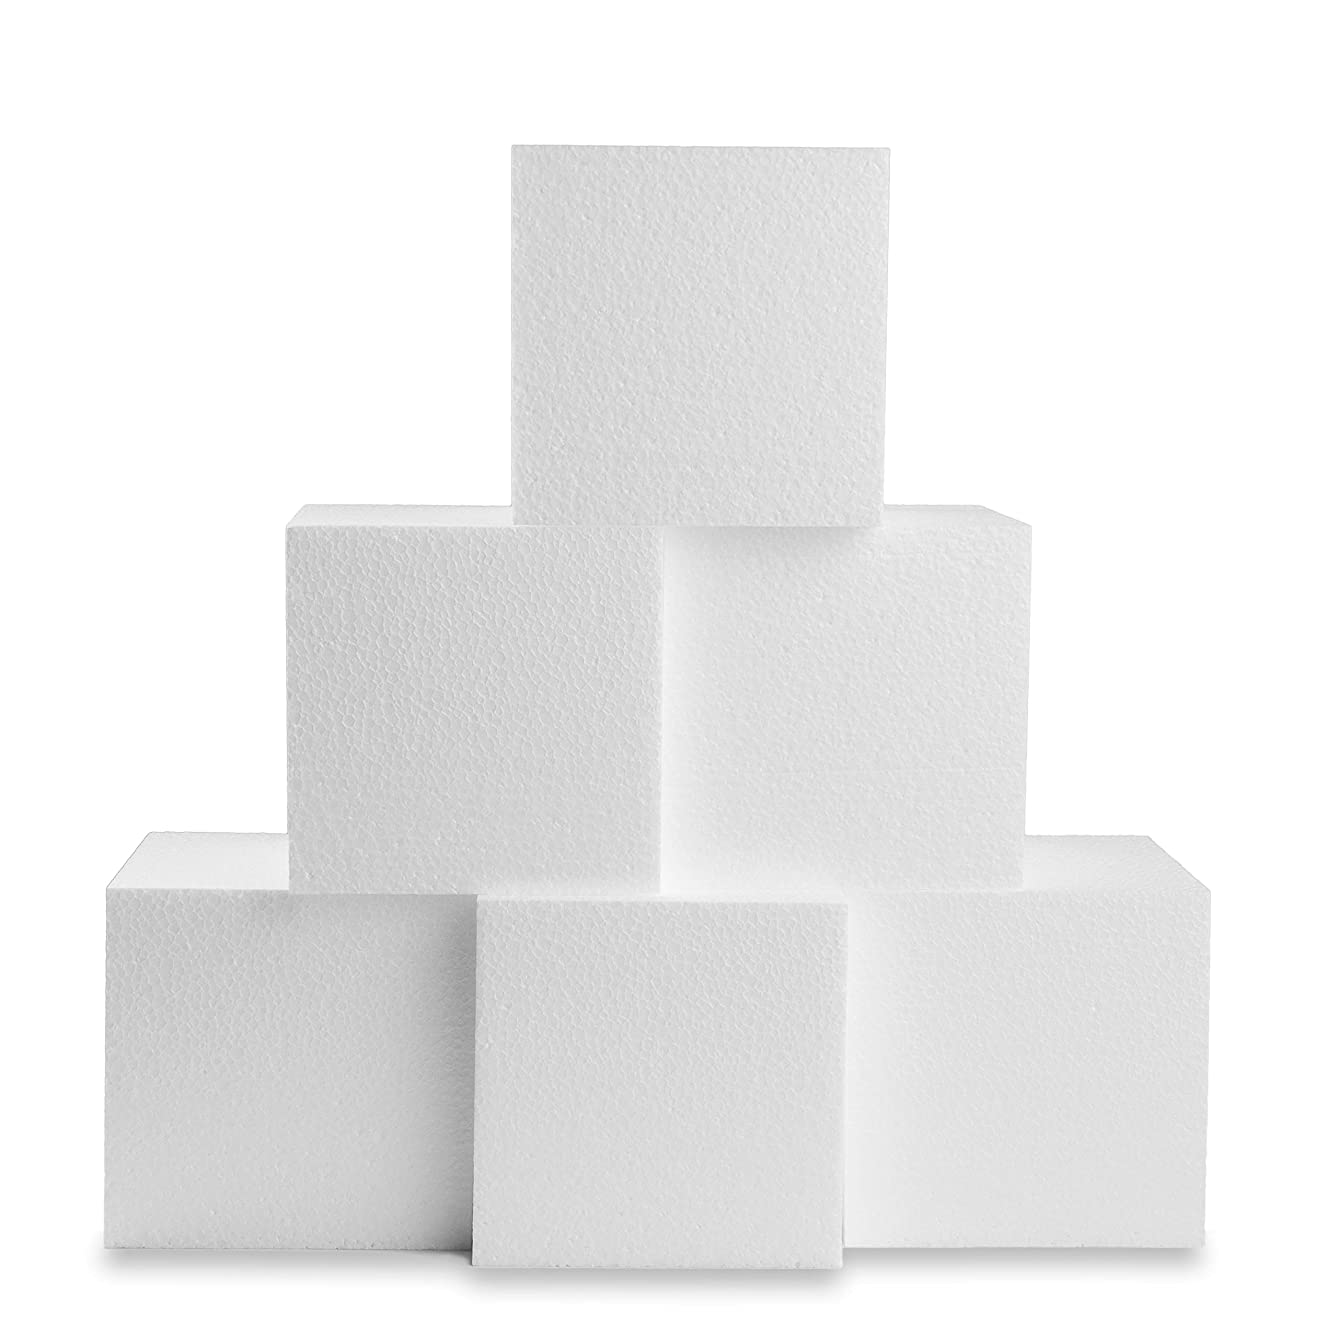 Silverlake Craft Foam Block - 6 Pack of 6x6x6 EPS Polystyrene Styrofoam Cubes for Crafting, Modeling, Art Projects and Floral Arrangements - Sculpting Block for DIY School & Home Art Projects (6)